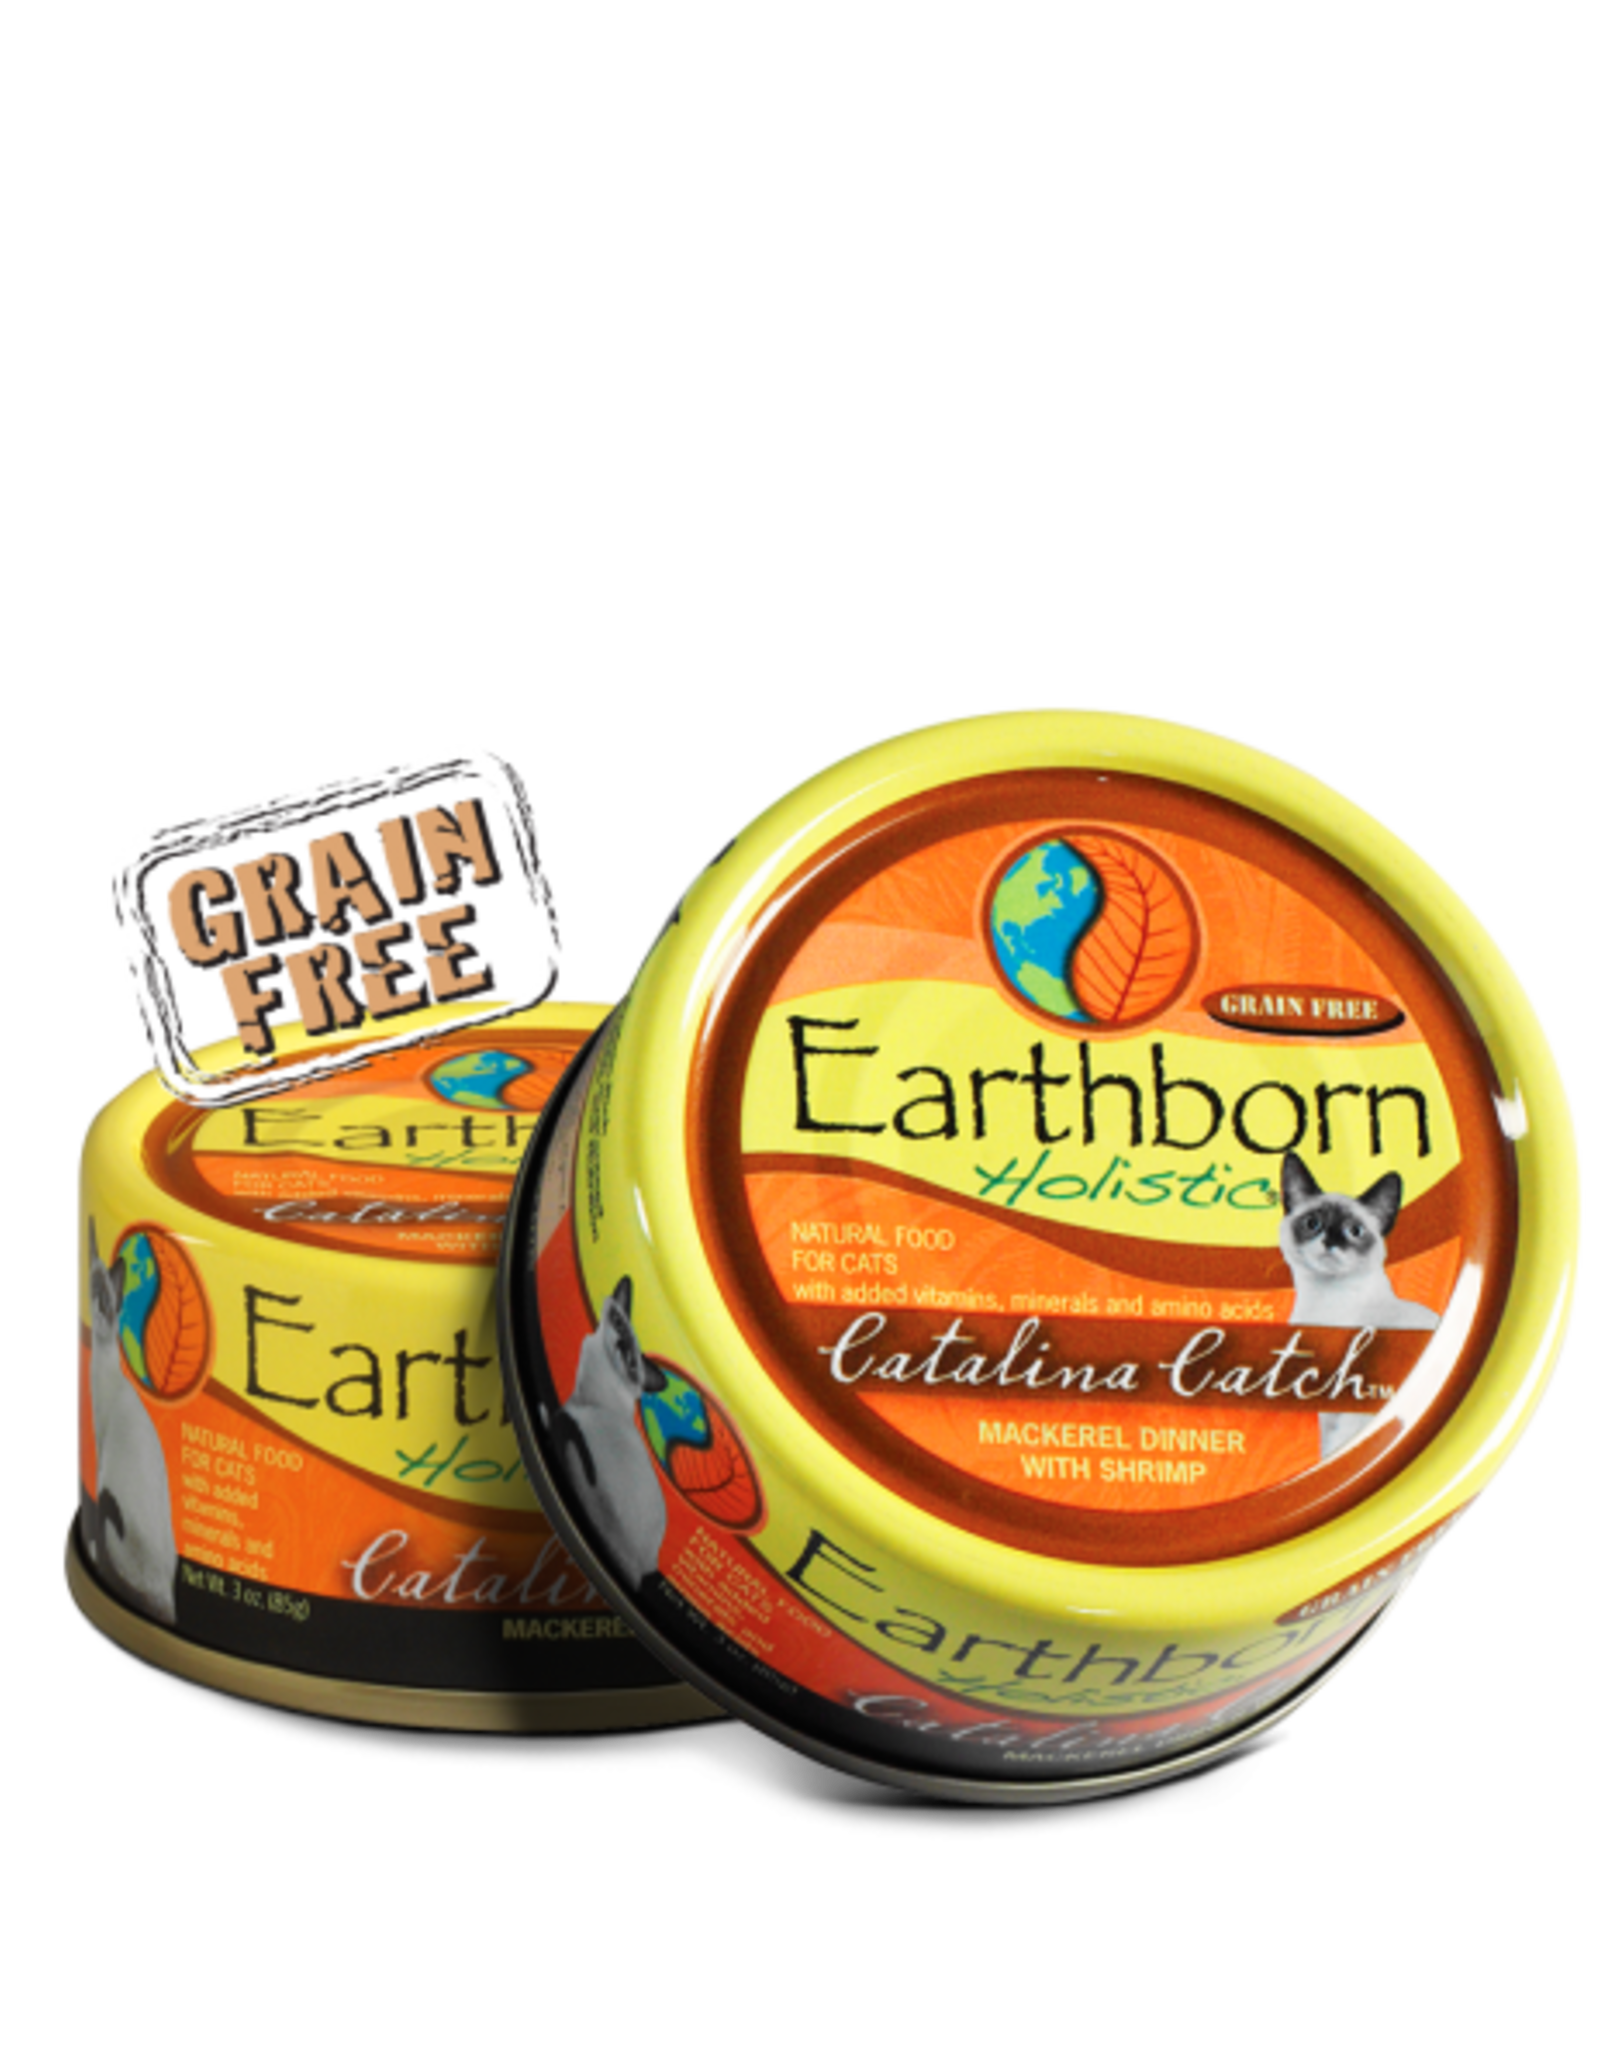 EARTHBORN EARTHBORN HOLISTIC CAT CATALINA CATCH CAN 5.5OZ CASE OF 24